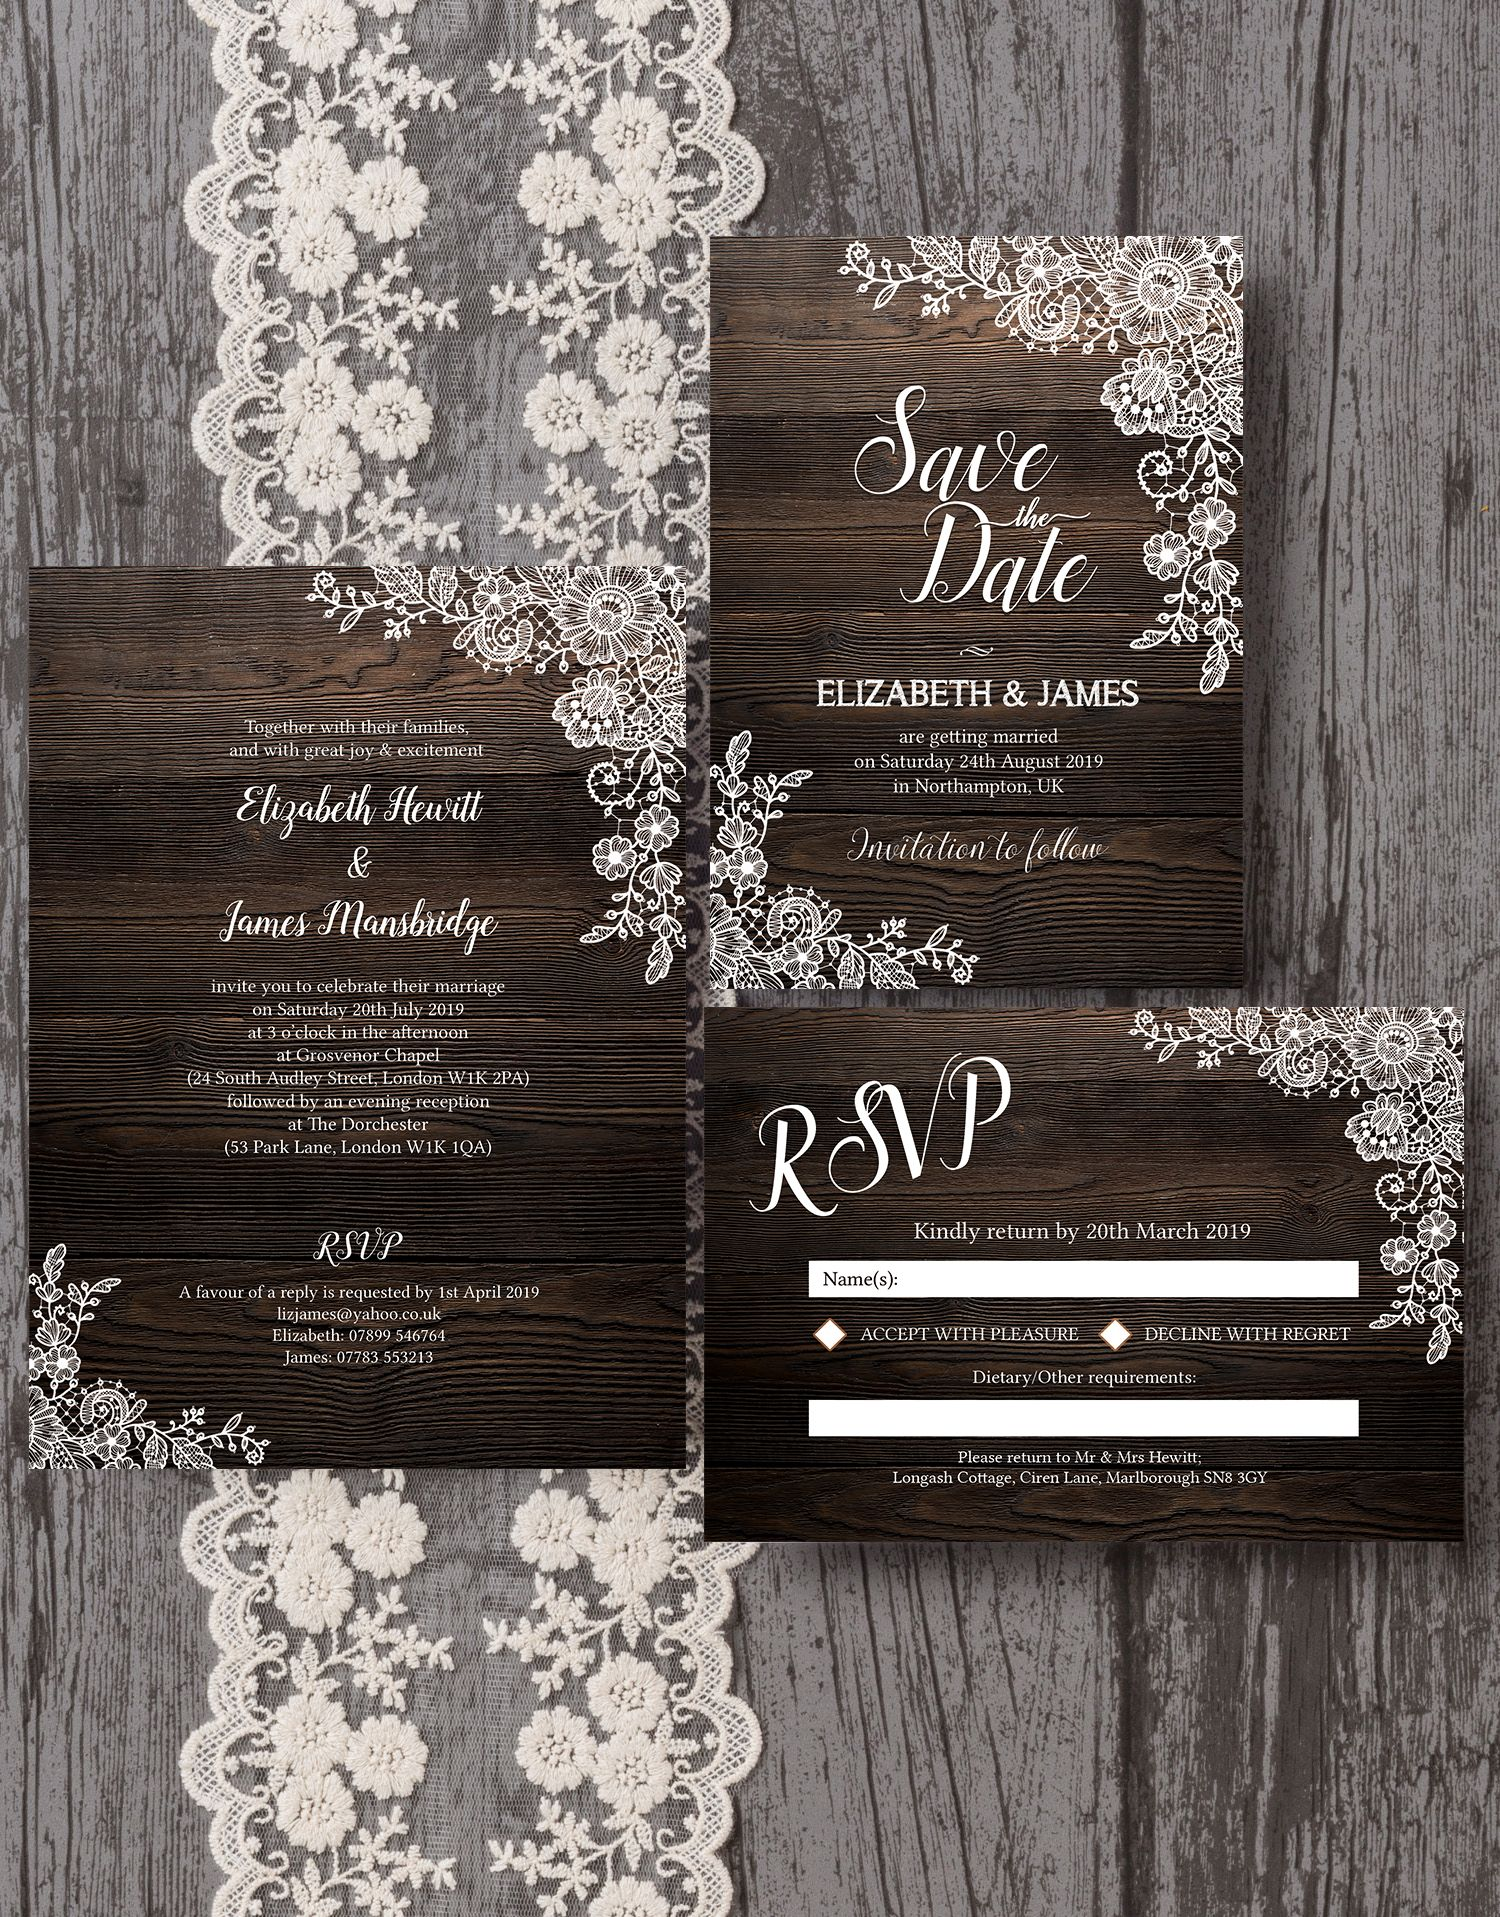 Beautiful Rustic Wood Background Wedding Stationery With Delicate Vintage Floral Lace Borders And White Calligraphy Style